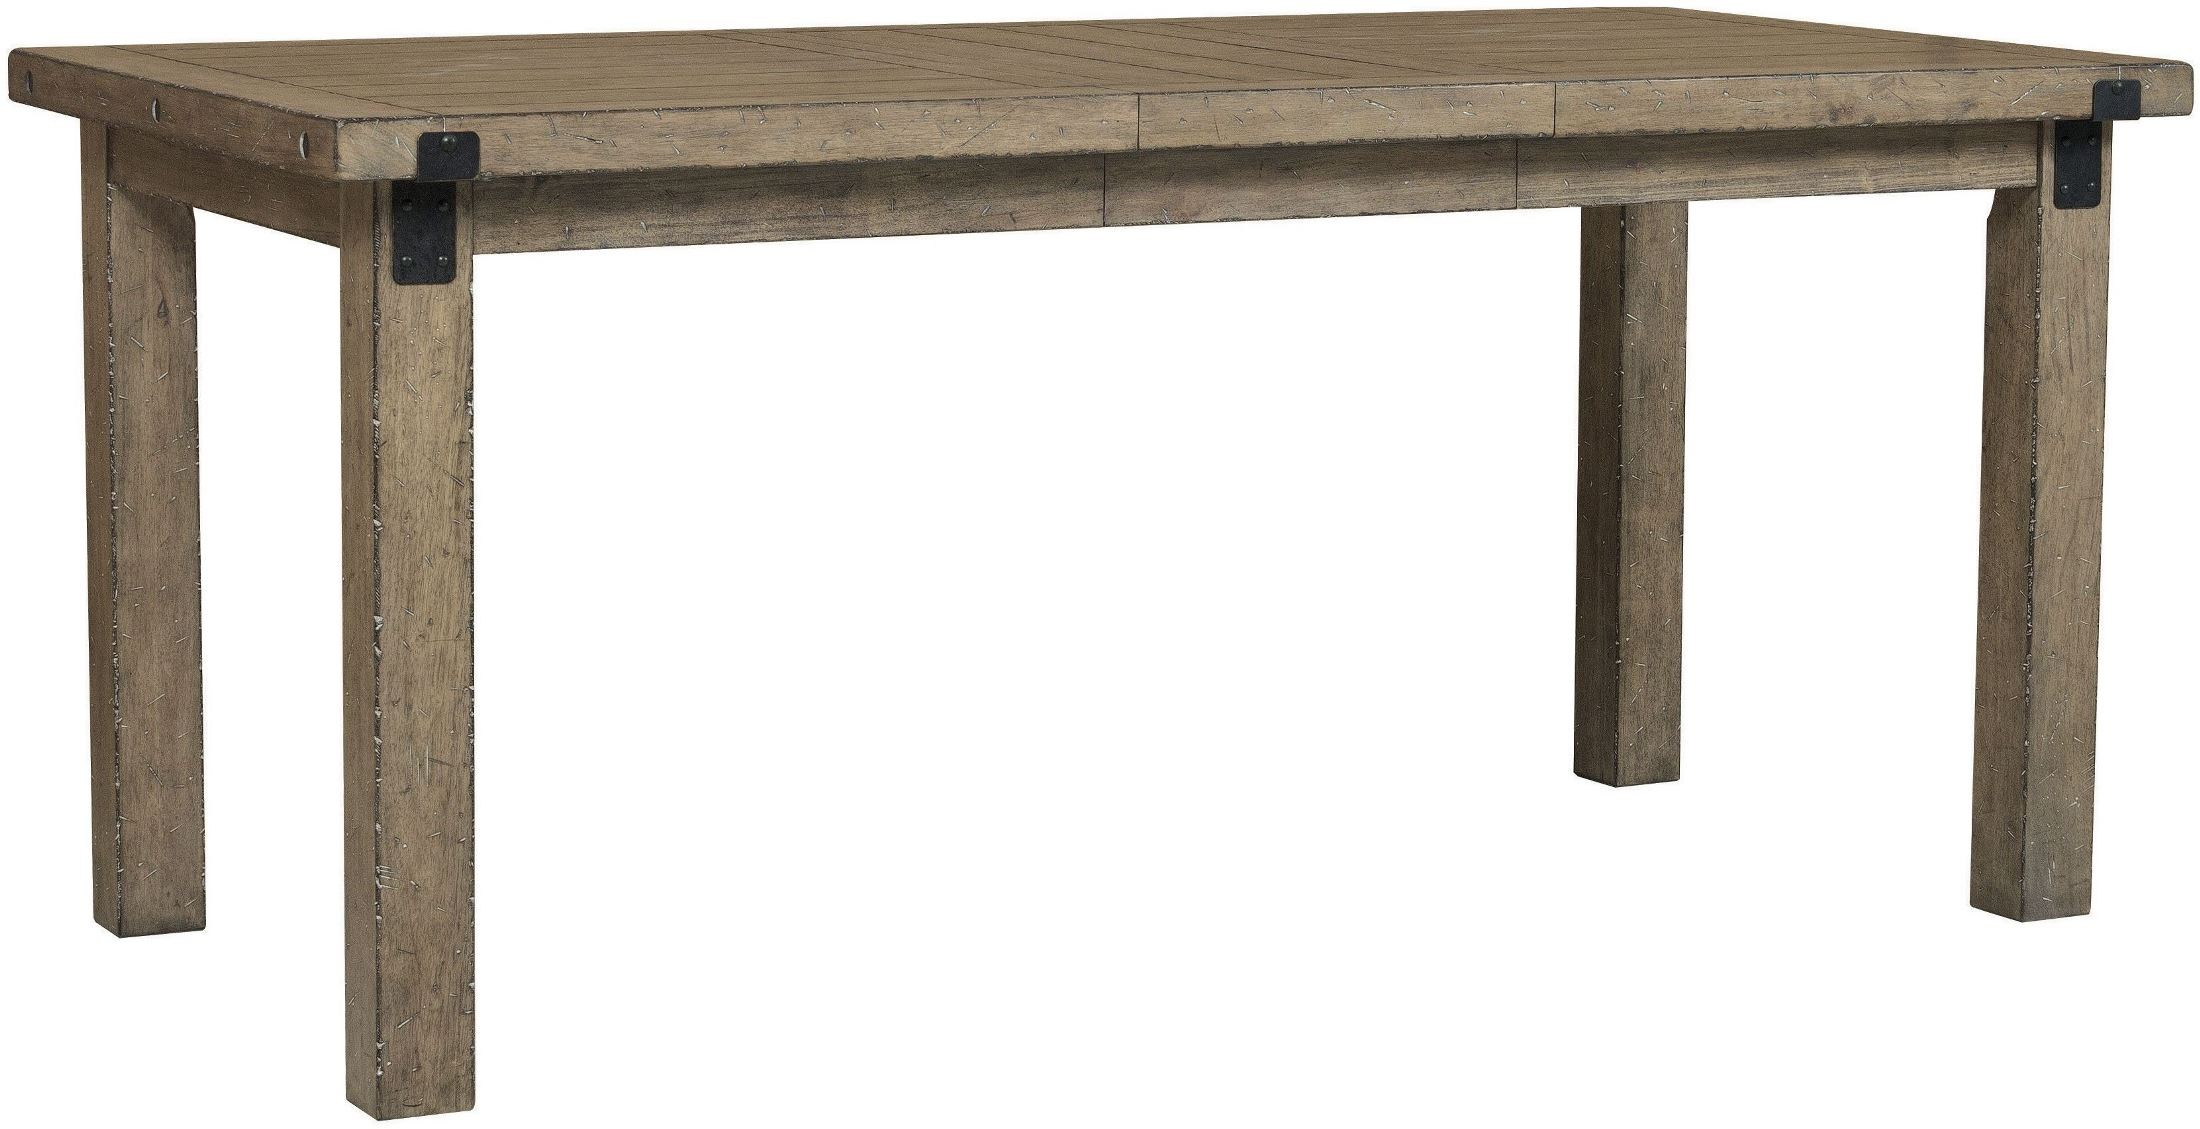 Flatbush brown rectangular counter height dining table from samuel lawrence coleman furniture - Rectangular dining table for 6 ...